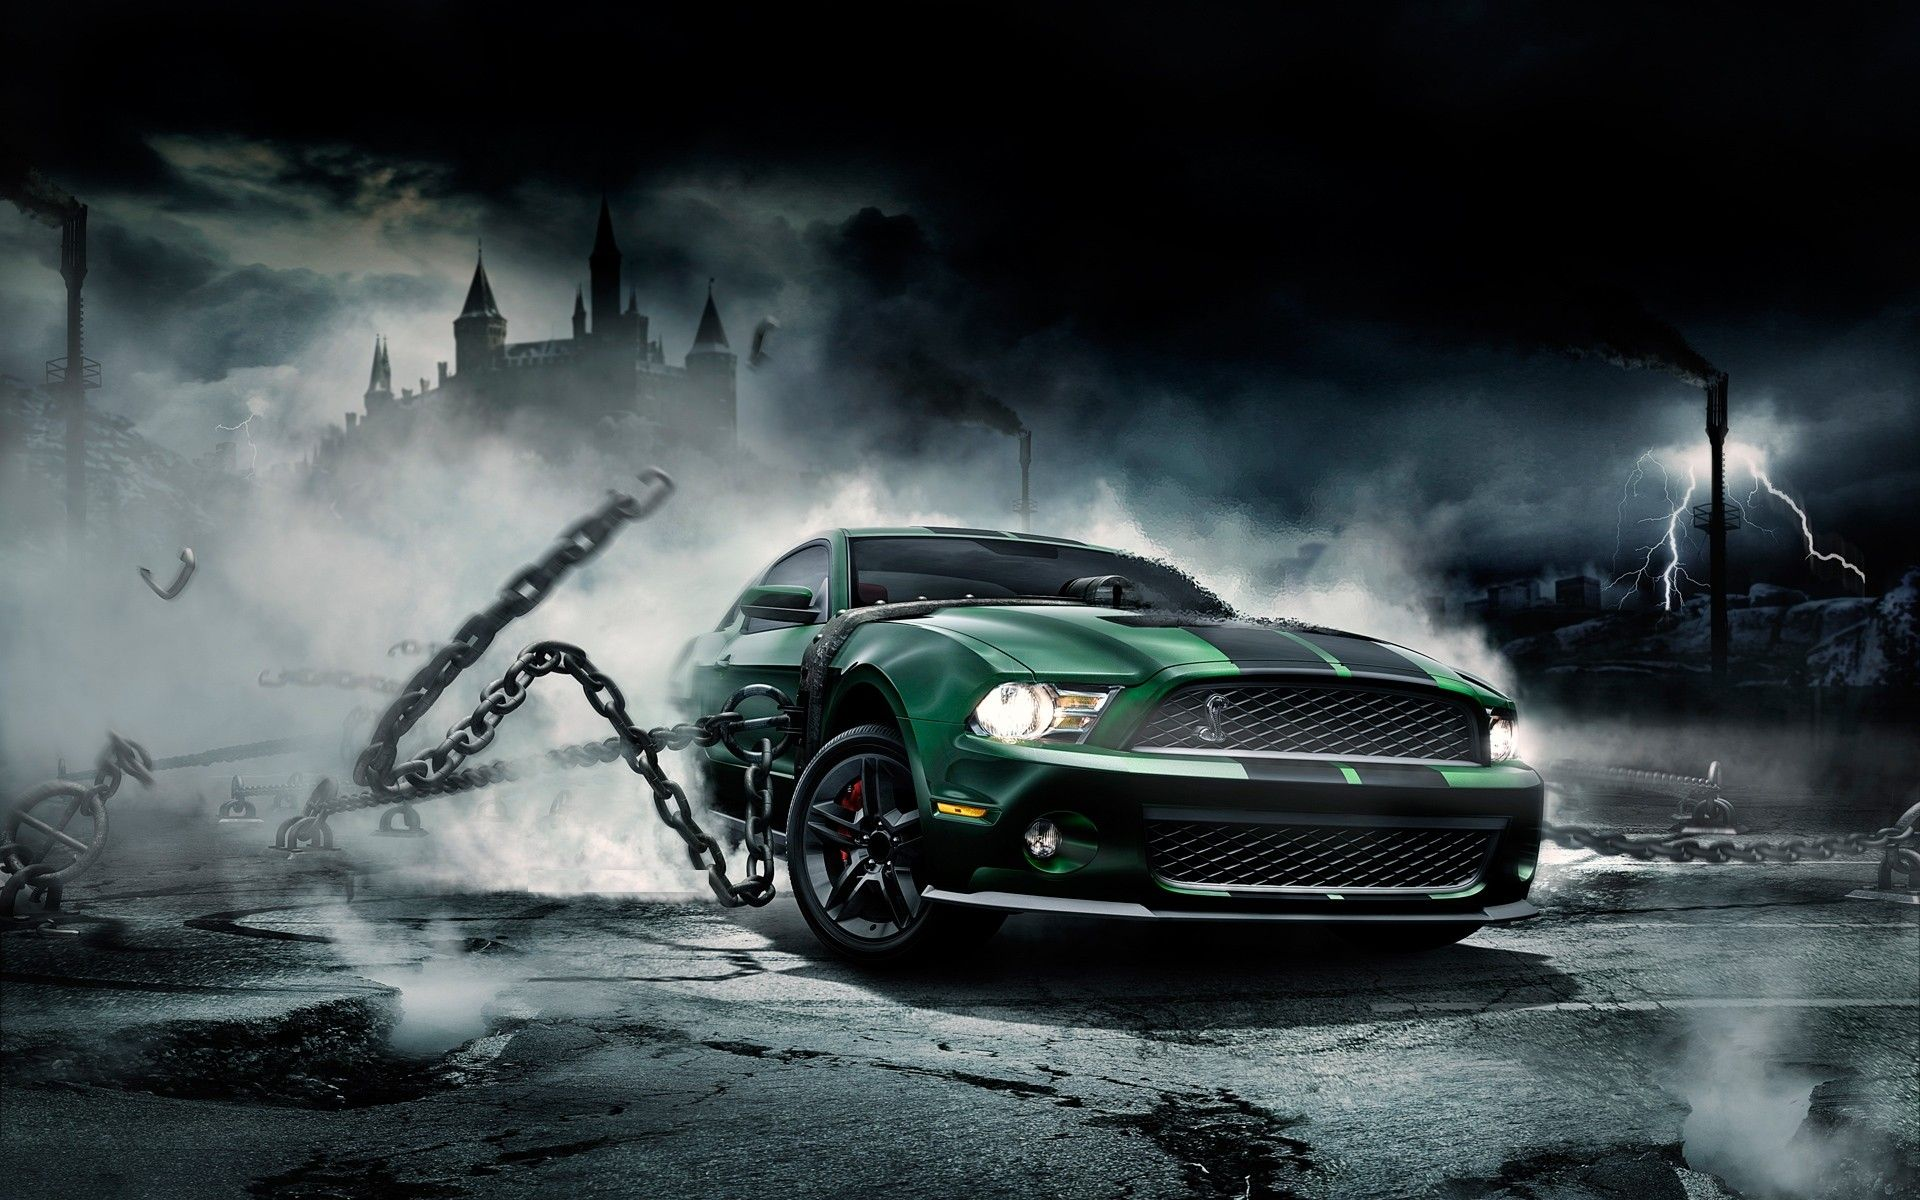 Hd Wallpapers For Pc 1920 1080 Free Download Free Download Hd Desktop Wallpapers 1080p Mustang Wallpaper Ford Mustang Wallpaper Car Backgrounds